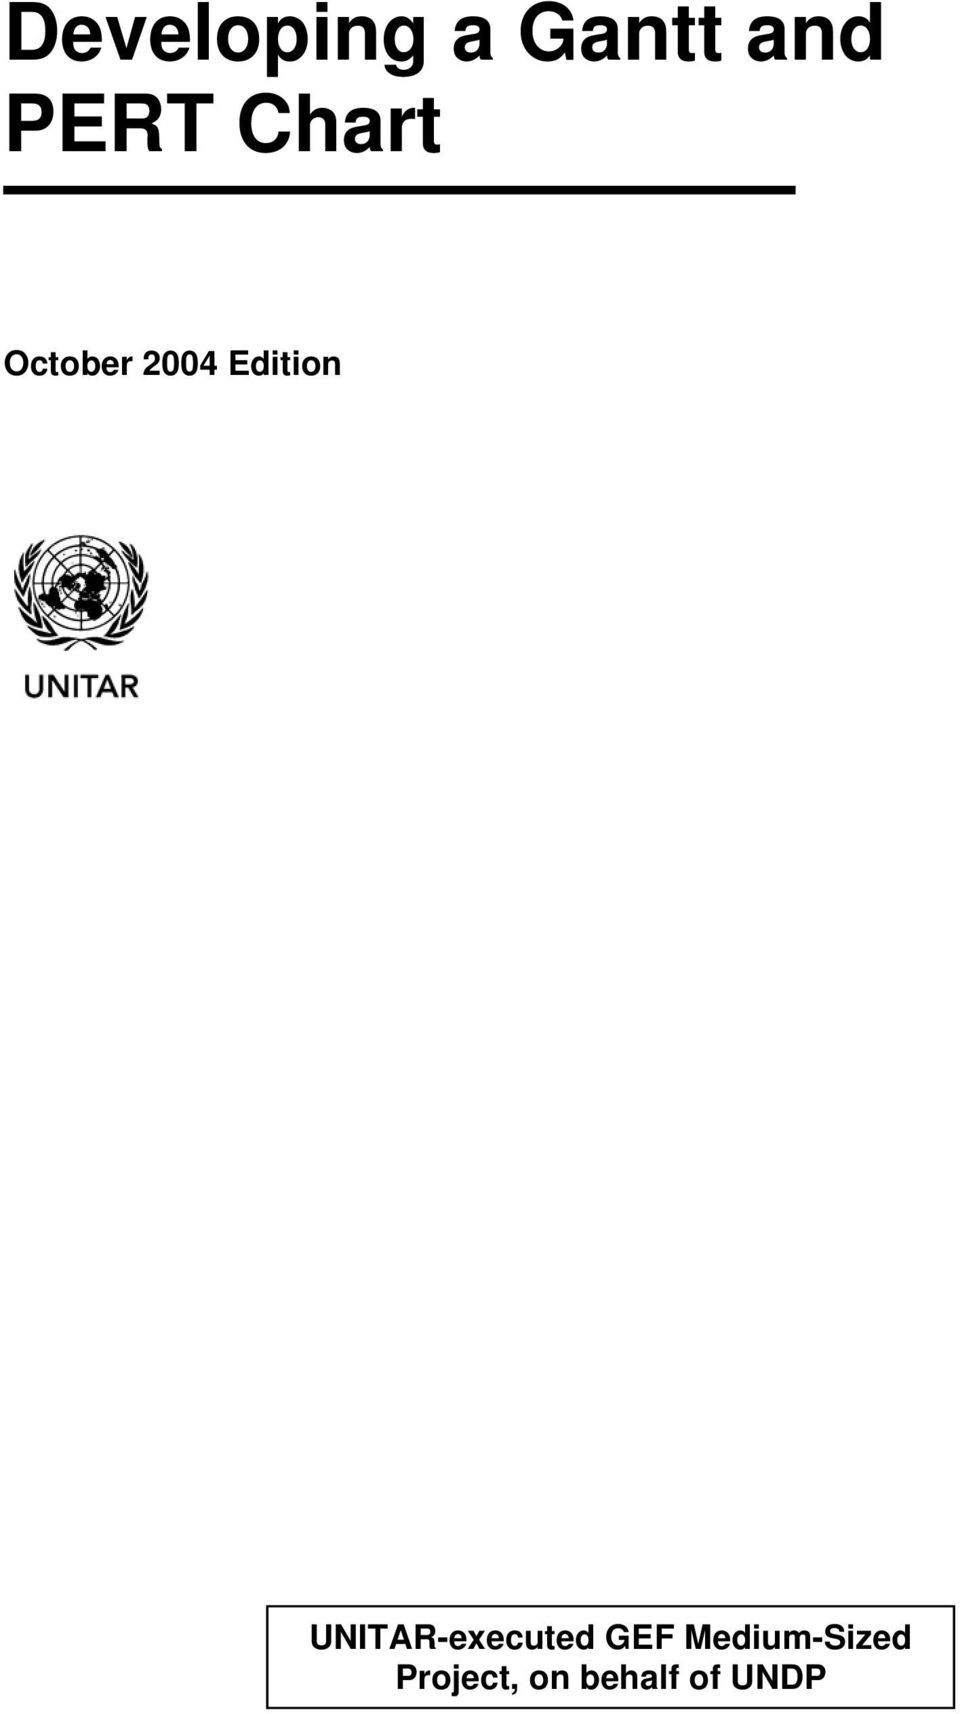 UNITAR-executed GEF